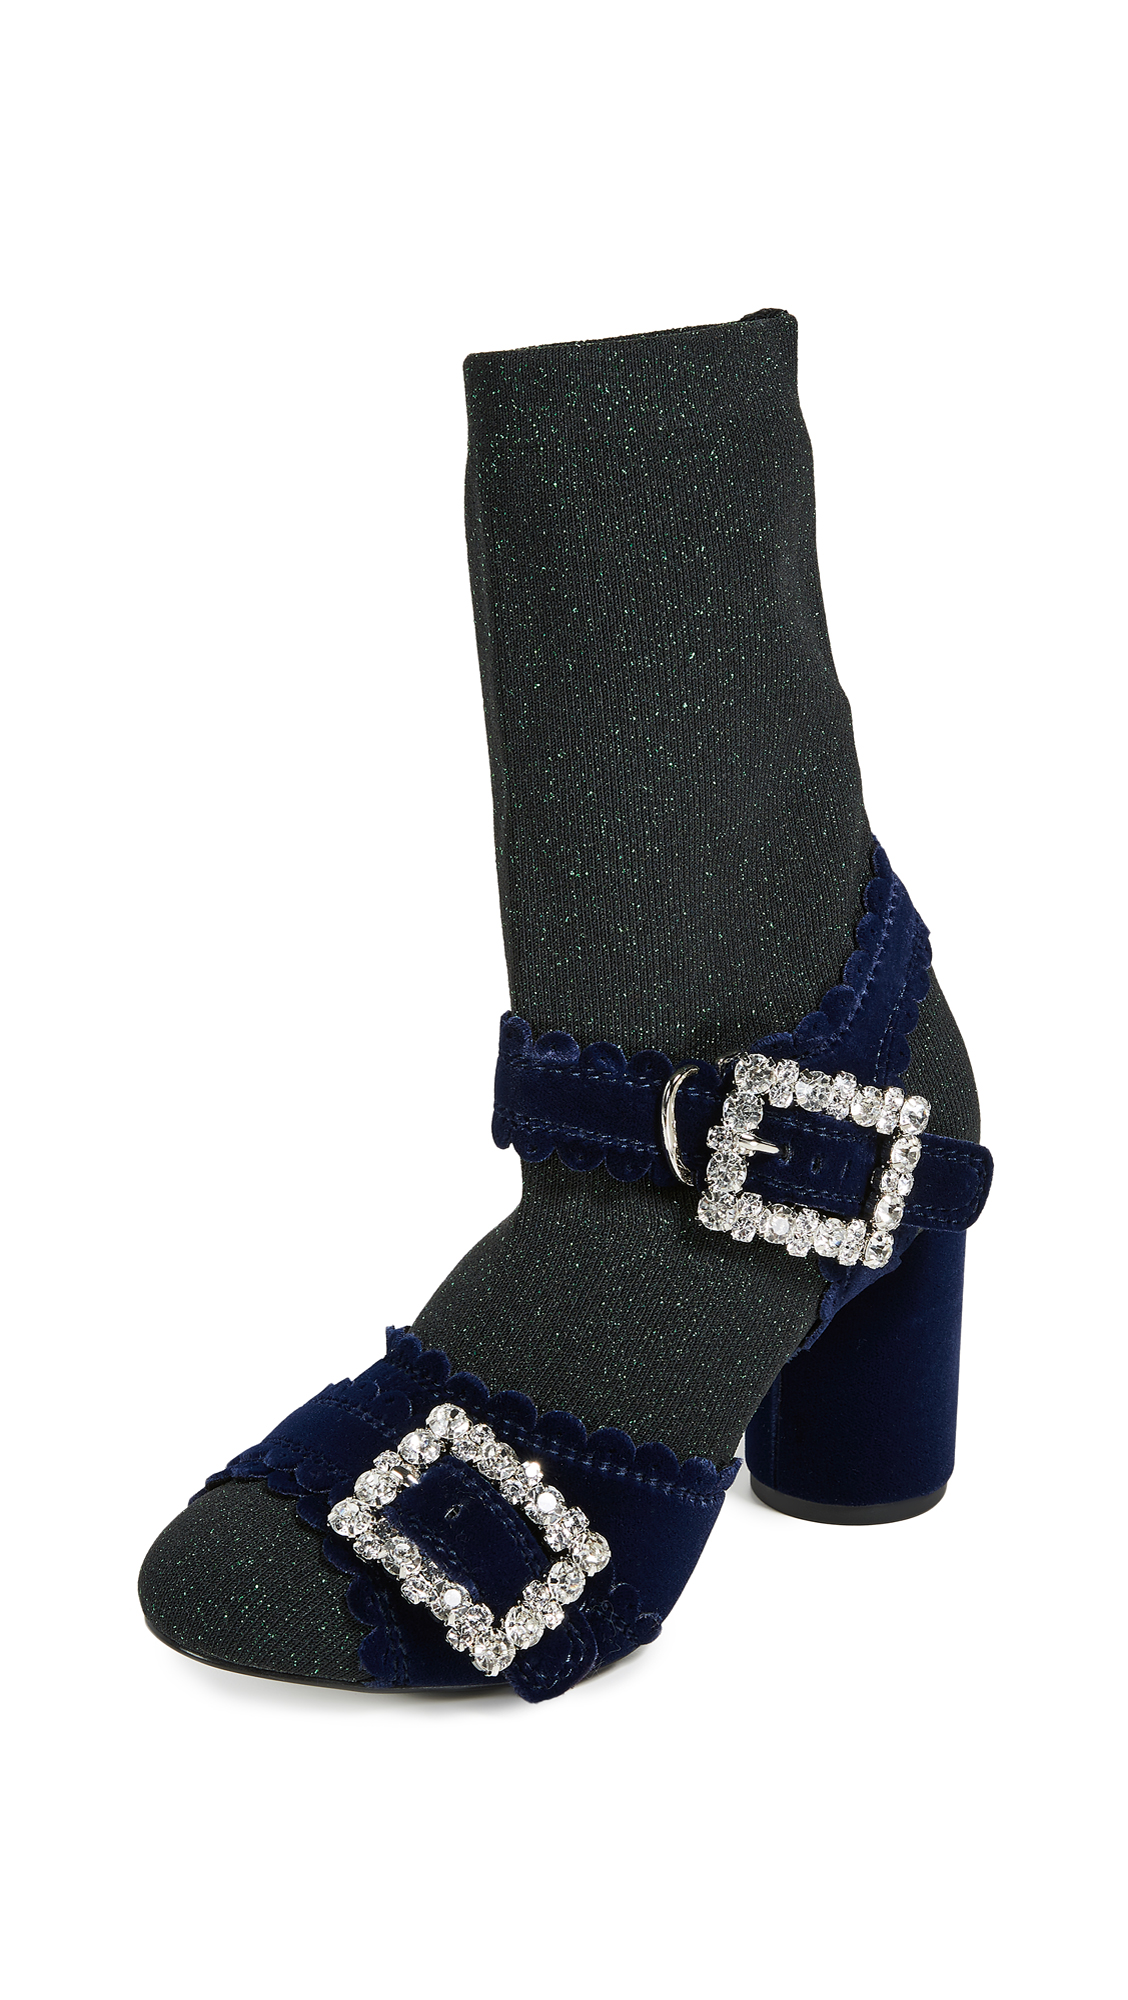 Suecomma Bonnie Glitter Sock Sandals - Green